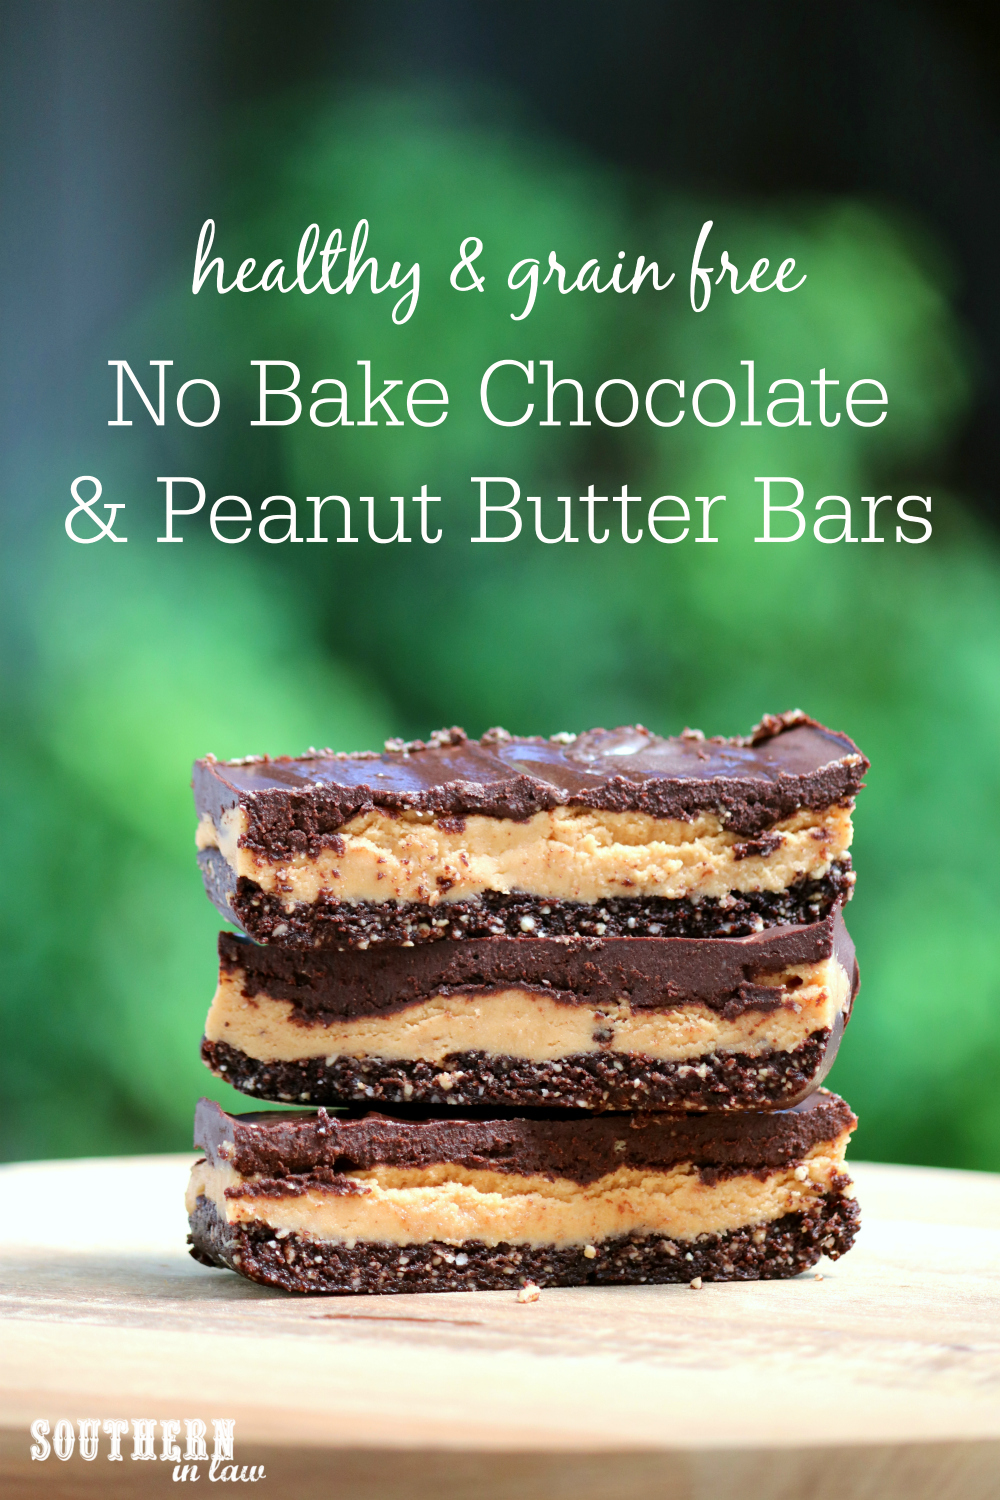 Southern In Law: Recipe: No Bake Chocolate and Peanut Butter